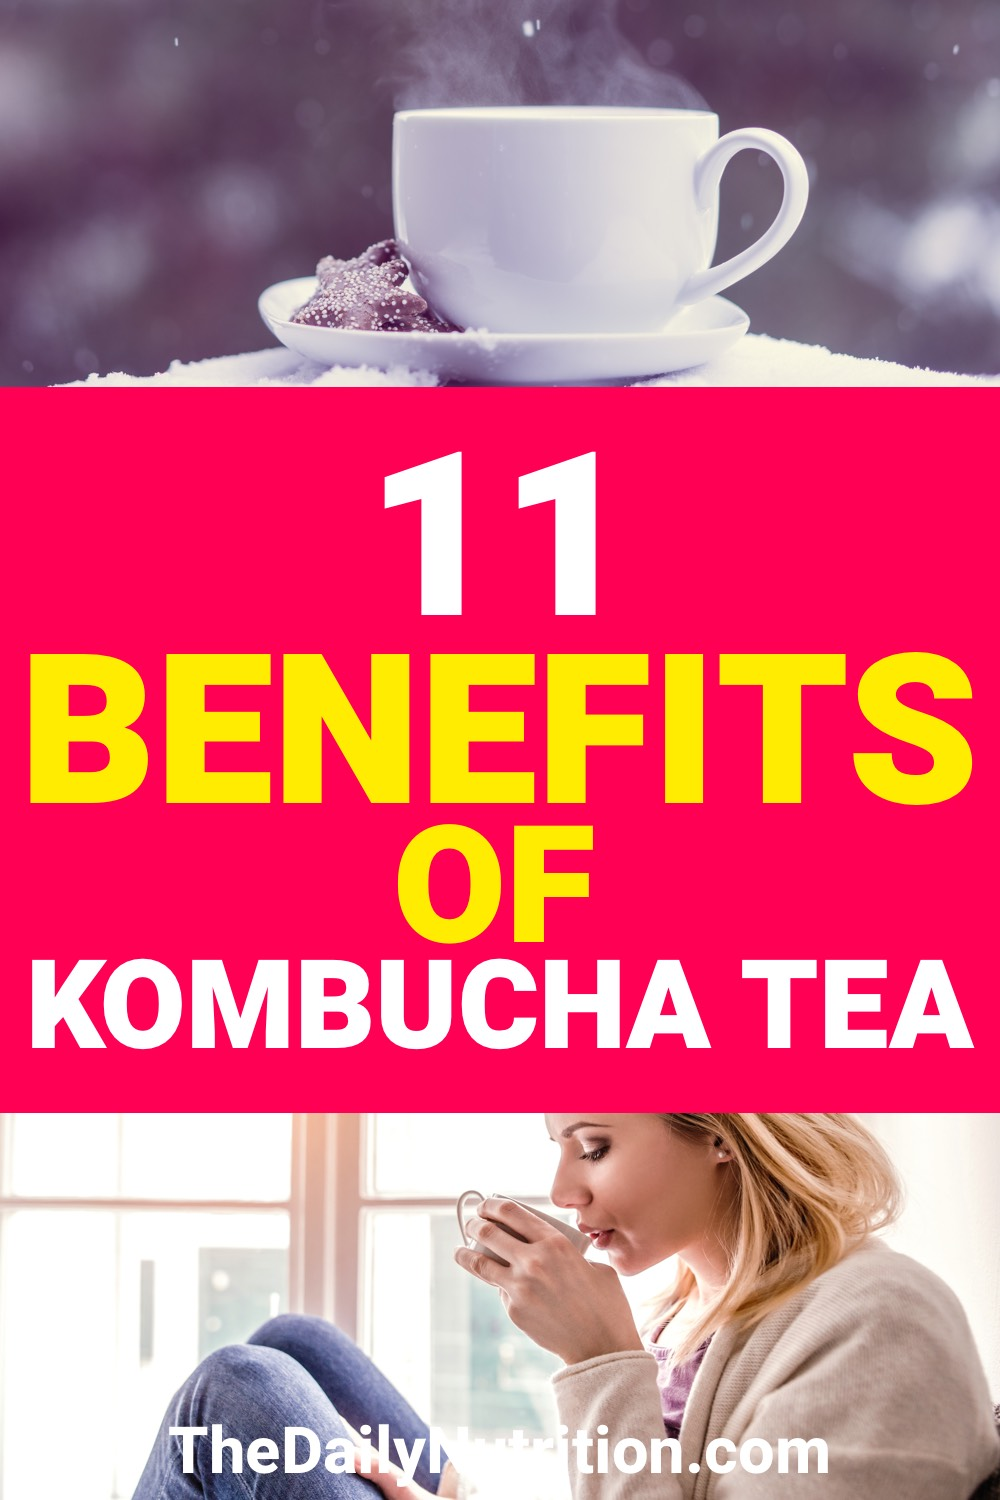 Having kombucha is going to improve your health. Here are 11 kombucha benefits that you'll instantly notice.